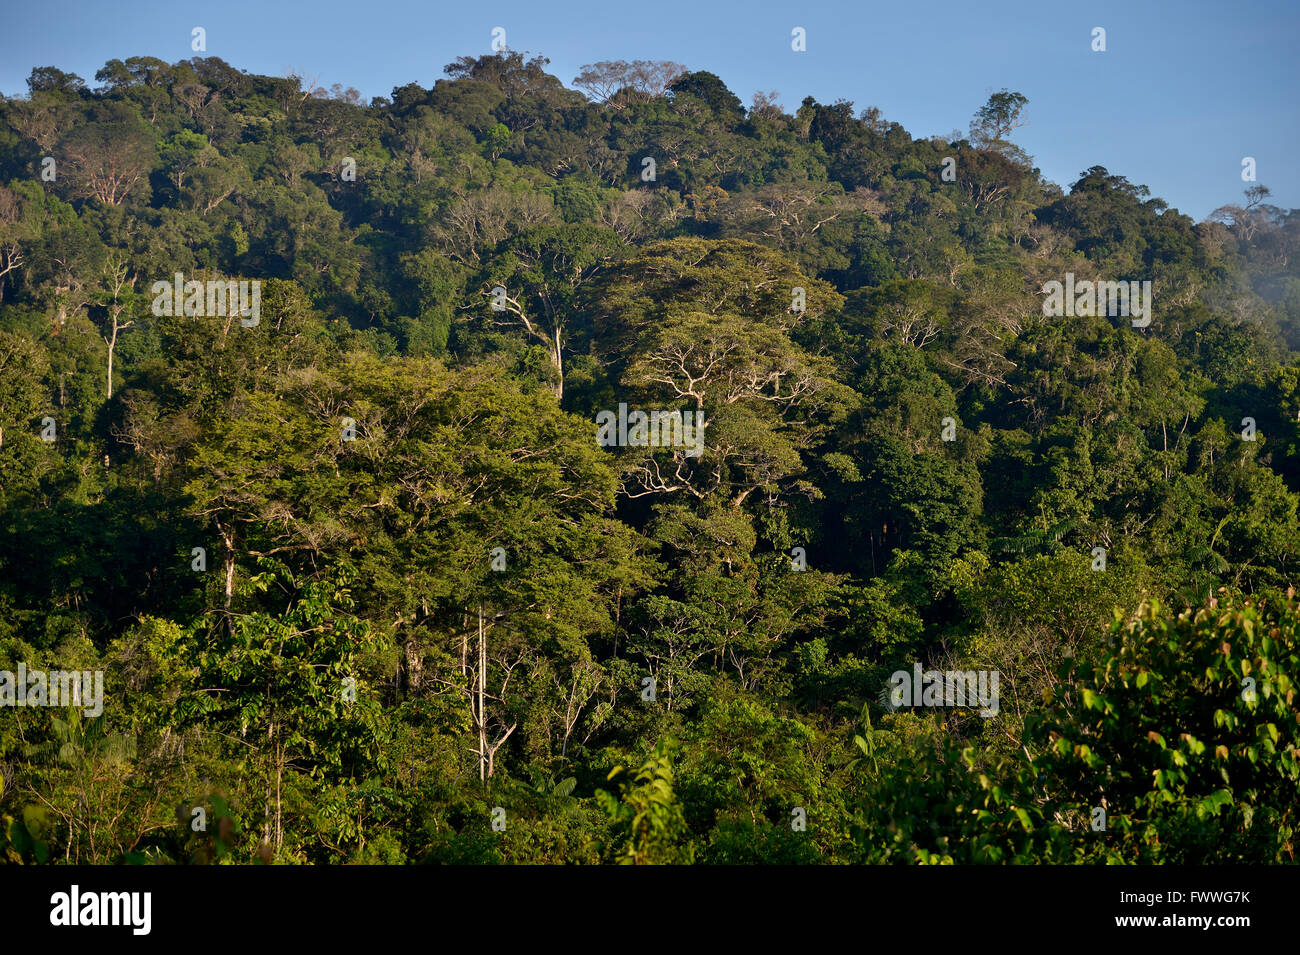 Forêt amazonienne, district de Itaituba, Pará, Brésil Photo Stock